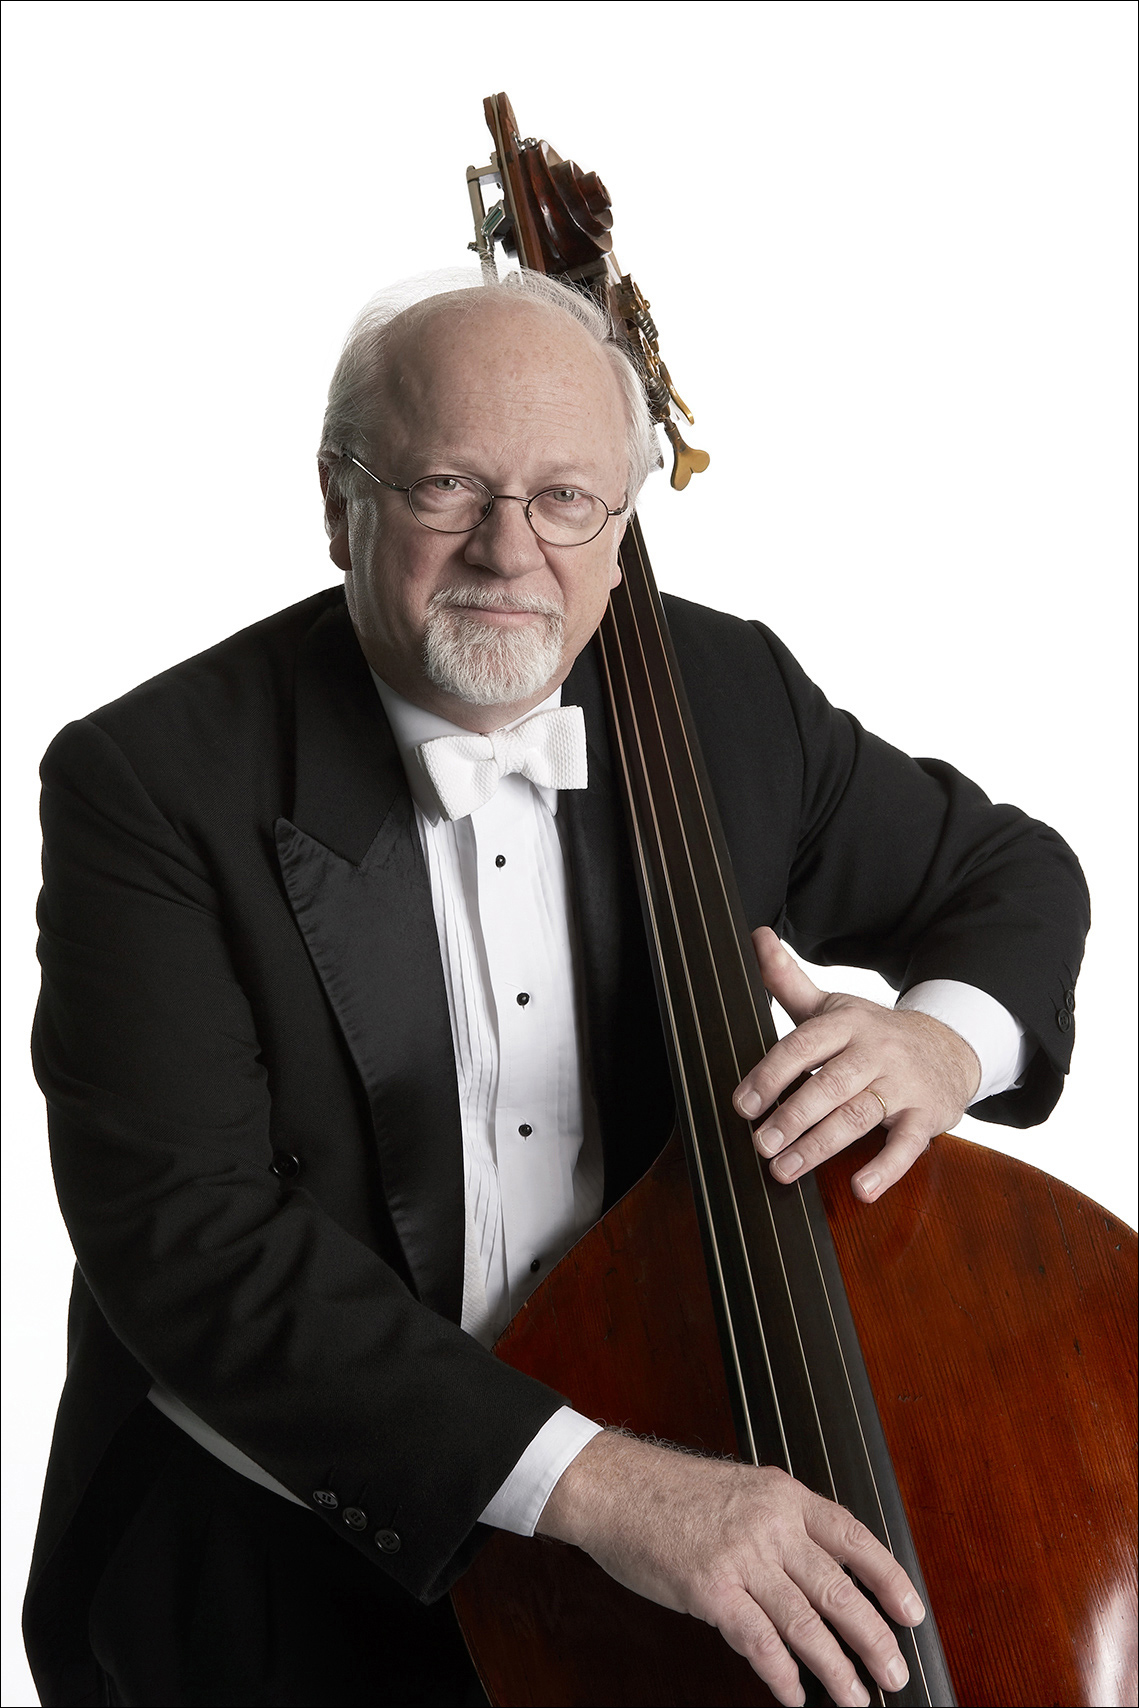 Minnesota_Orchestra_Cello_Man